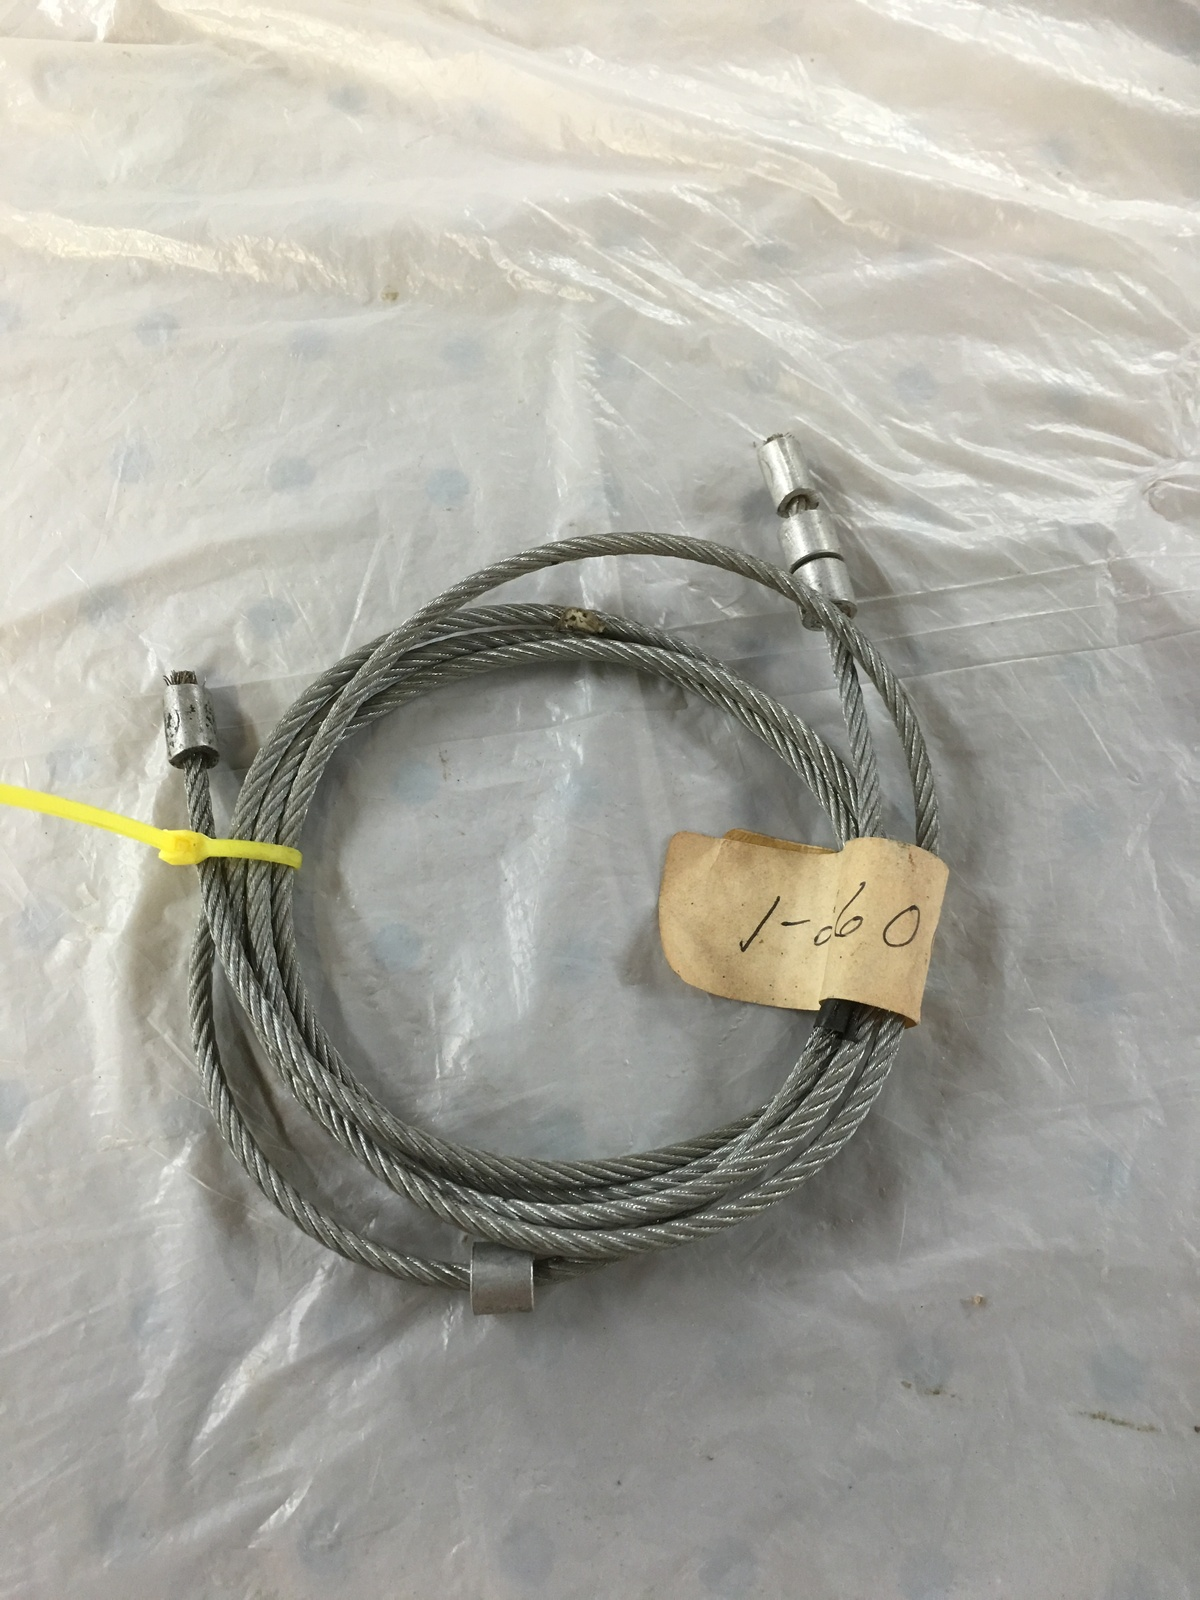 363131 266921  Snapper  Cable